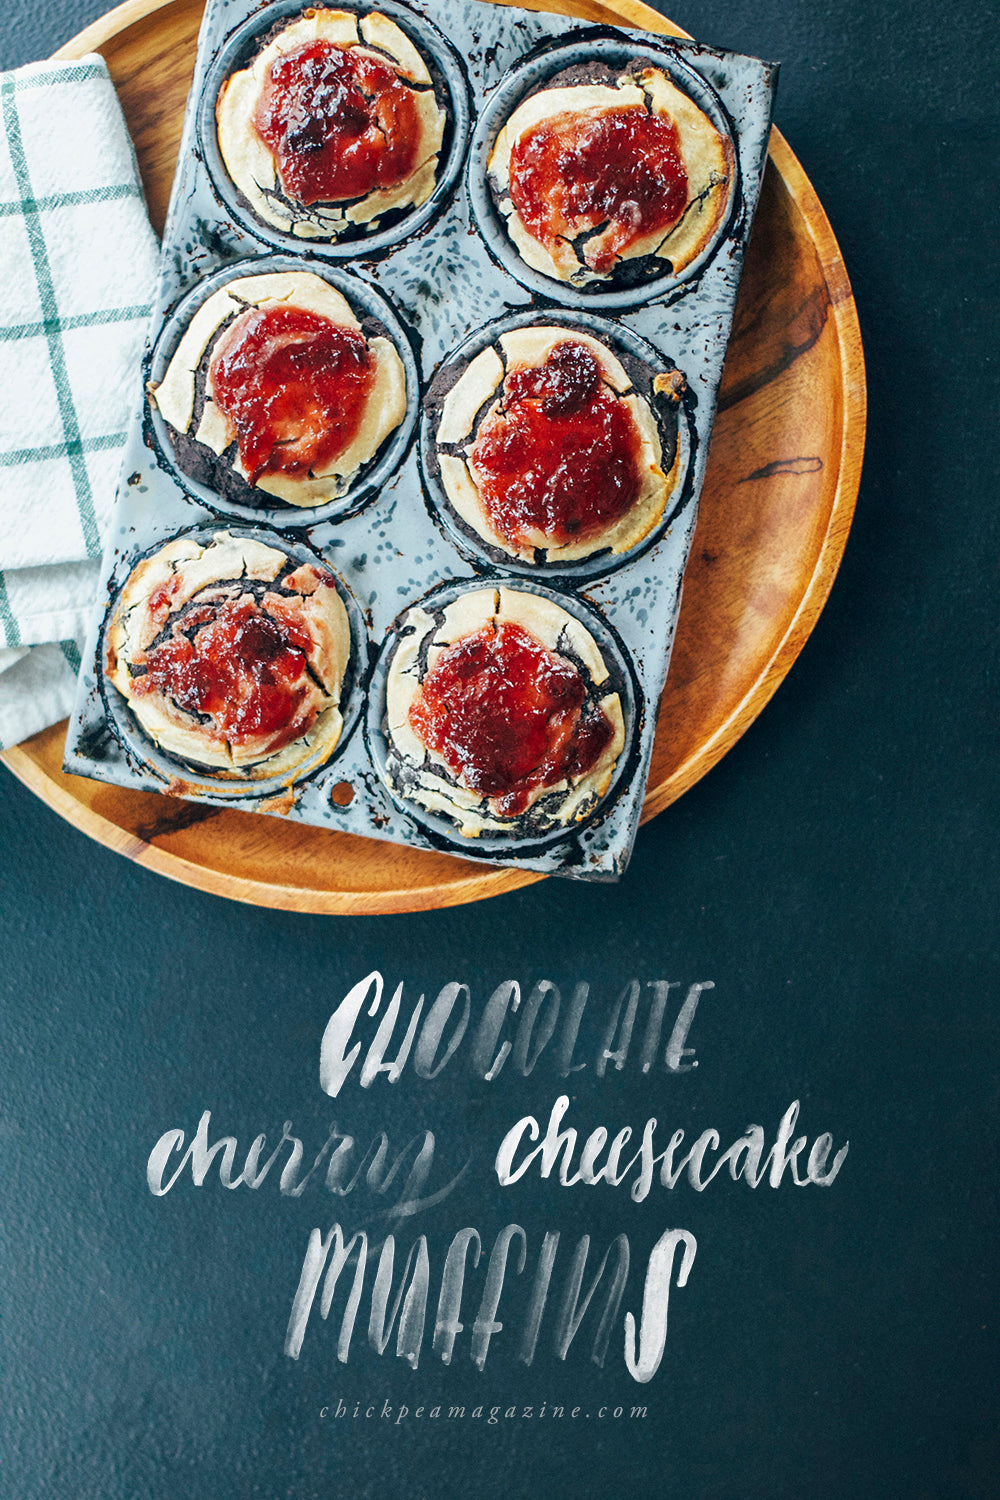 vegan chocolate cherry cheesecake muffins